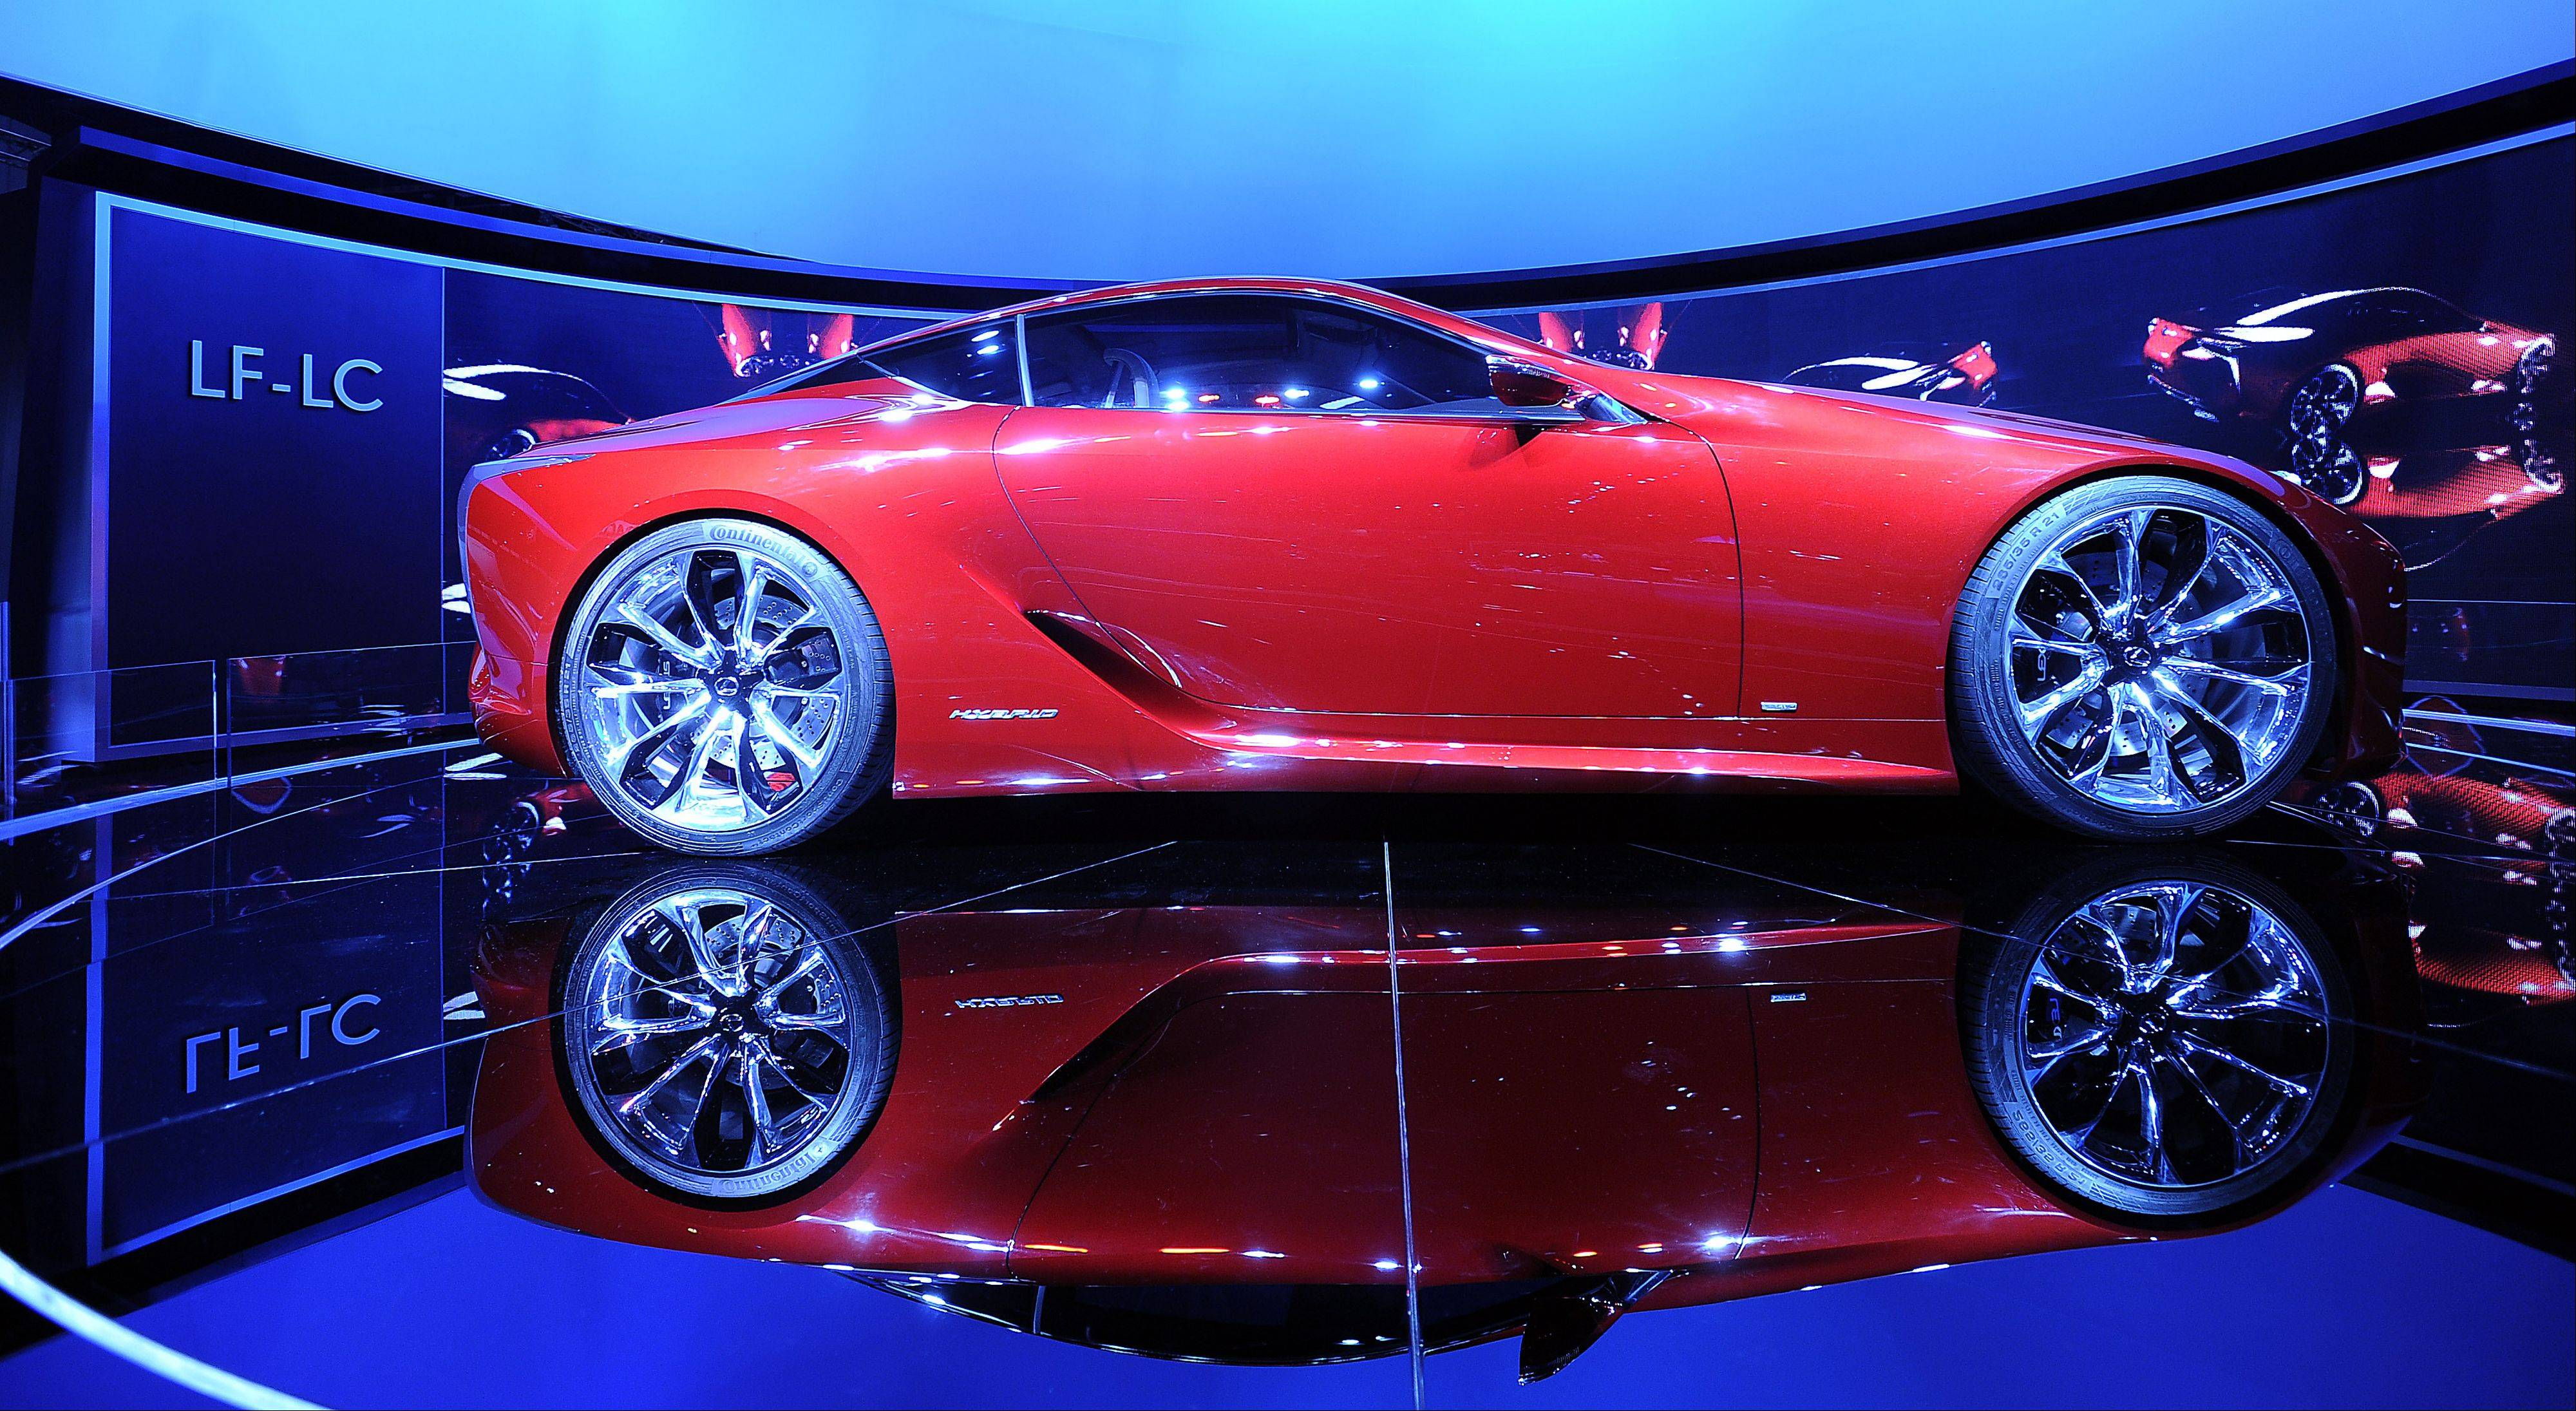 Images: The 104th Chicago Auto Show